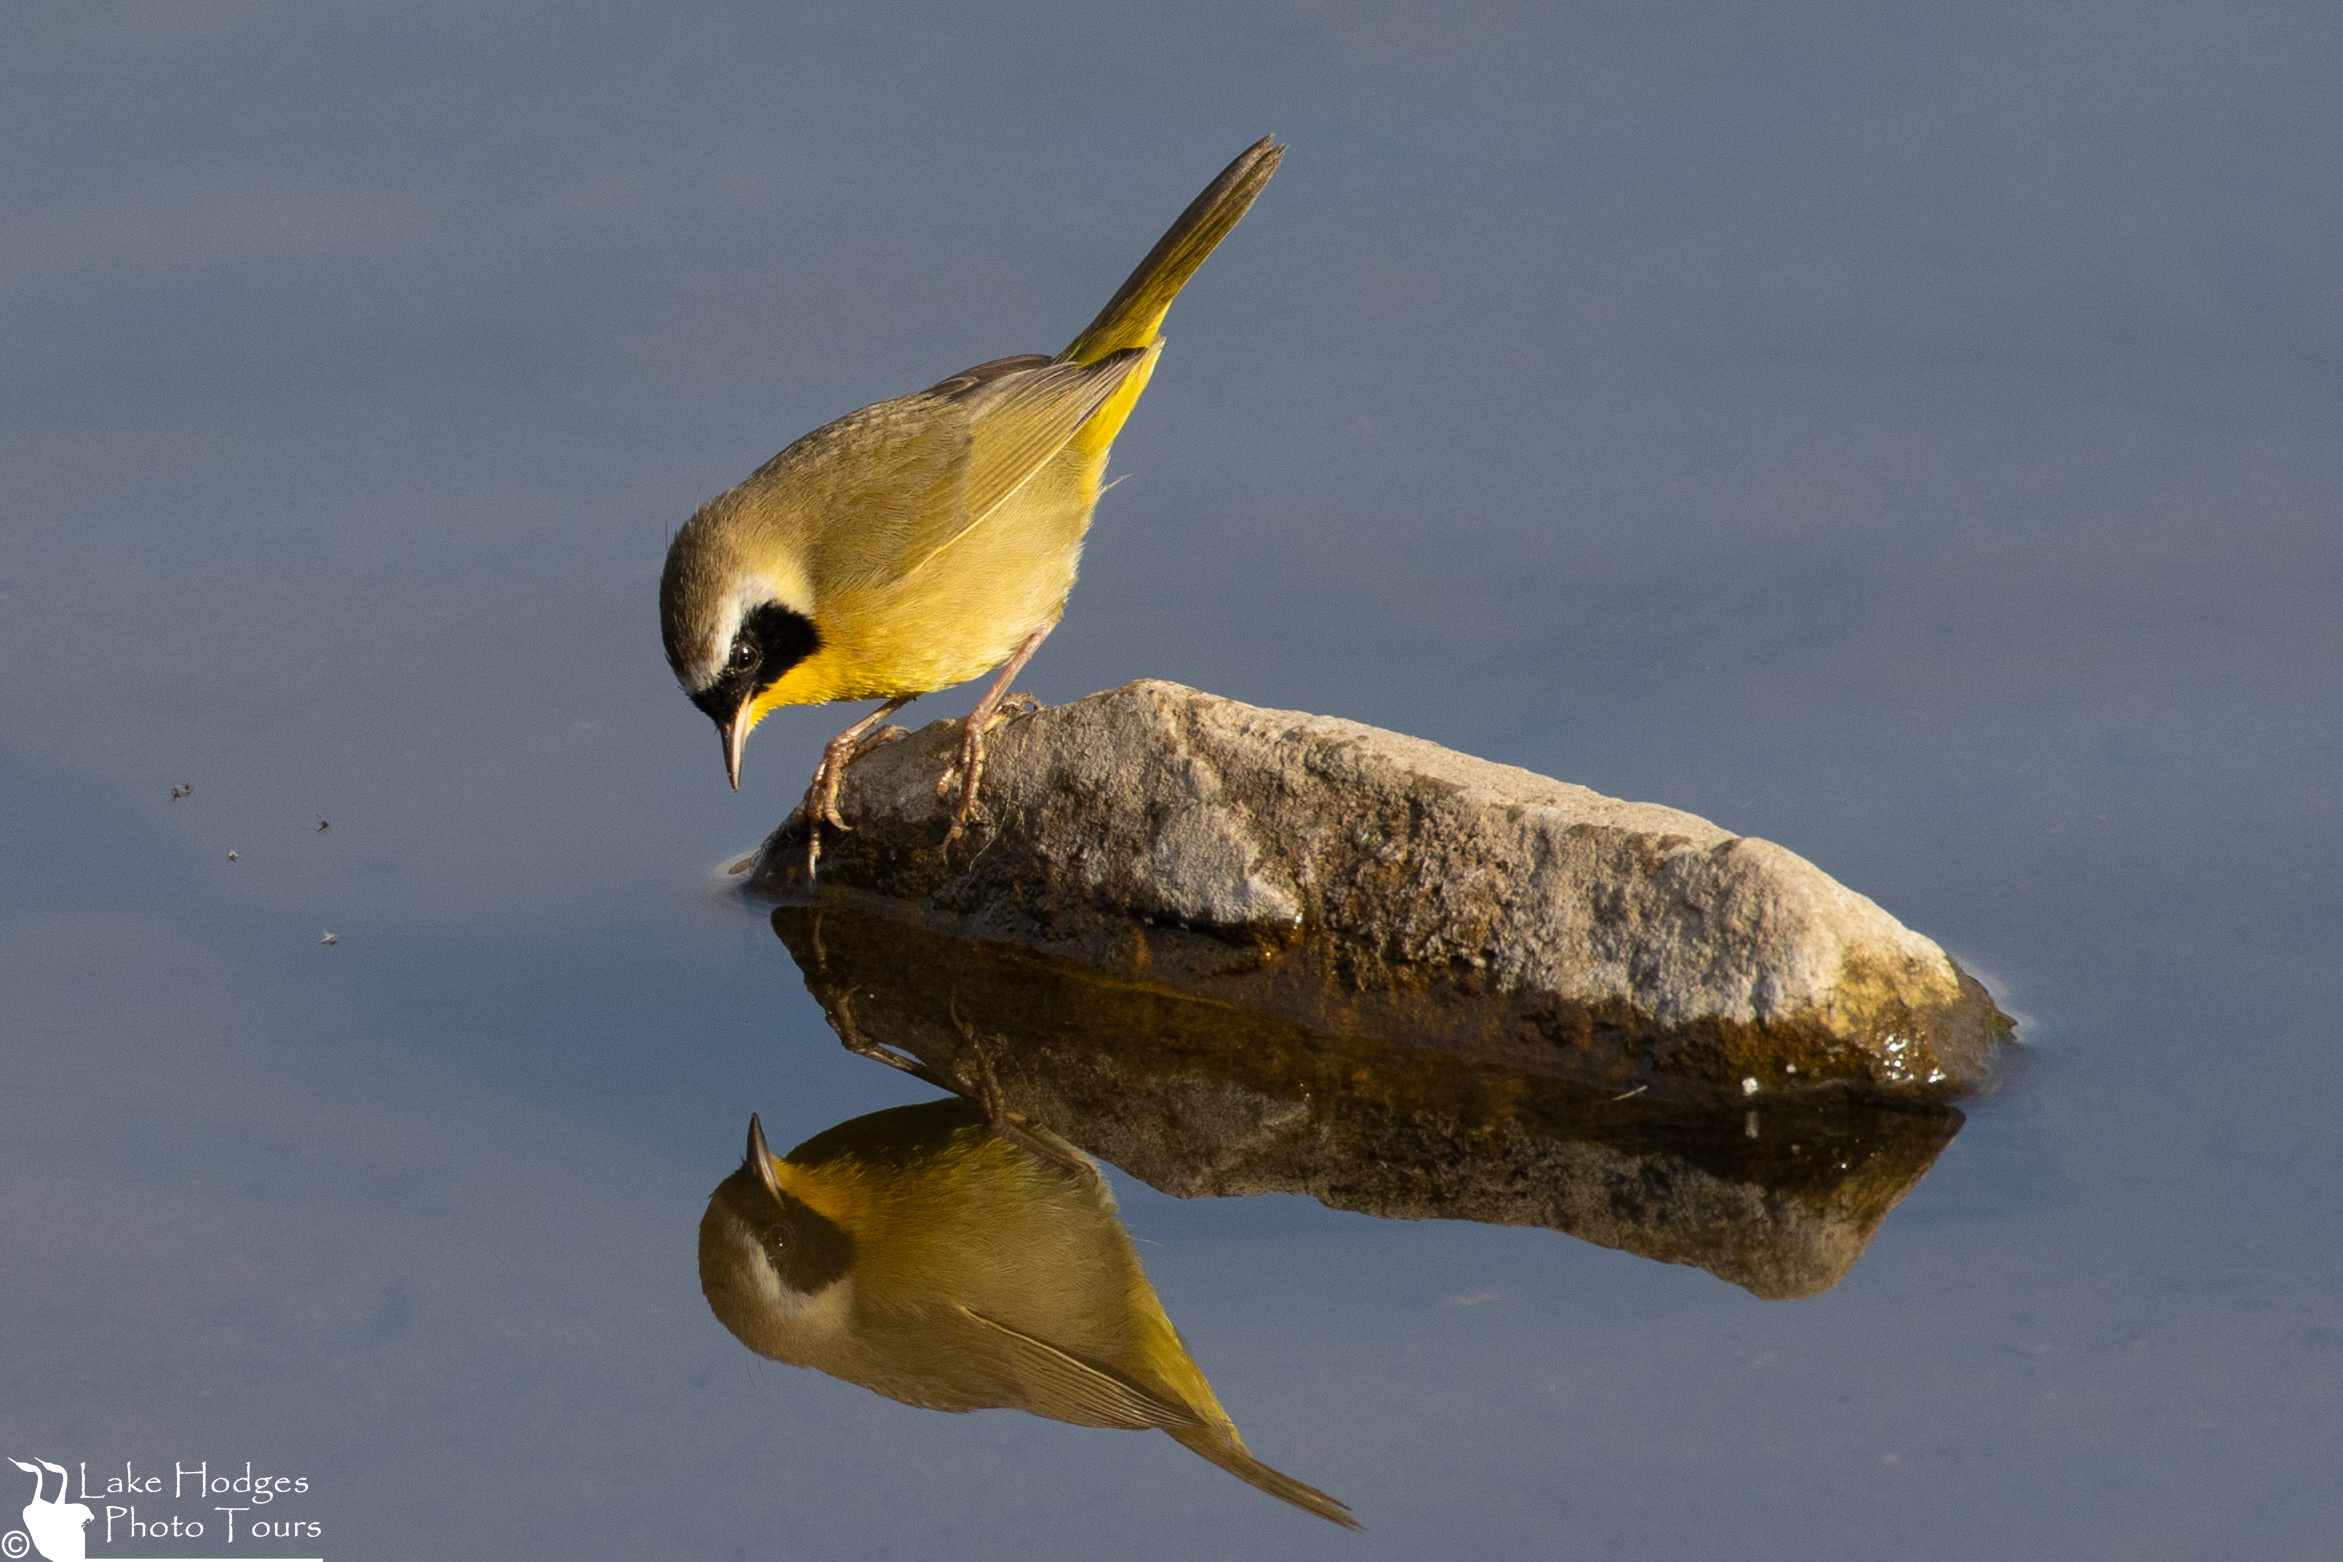 Boy, am I good looking or what! Common Yellowthroat at Lake Hodges Photo Tours